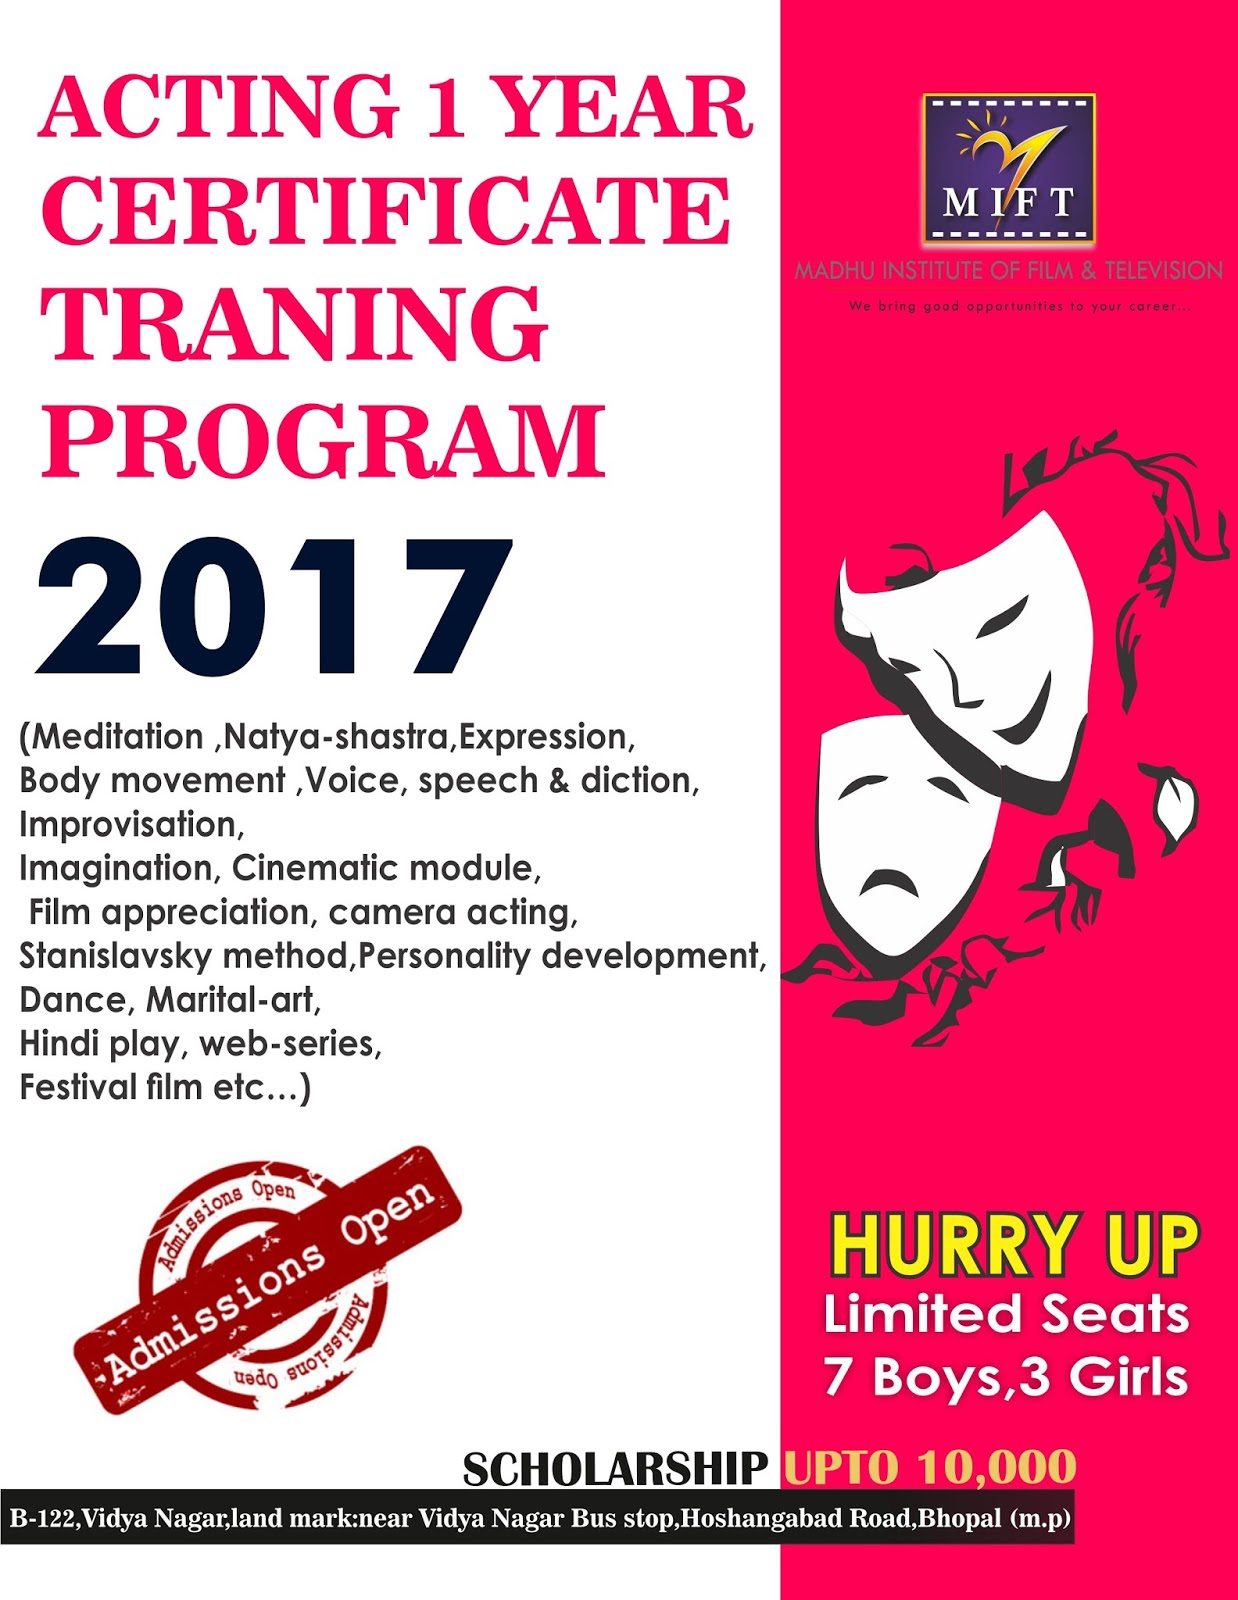 Madhu institute of film and television pvt ltd m i f t registration open acting 1 year certificate training program sept 2k17 madhu institute of film television mift call 7581024036 0755 4055145 yelopaper Choice Image